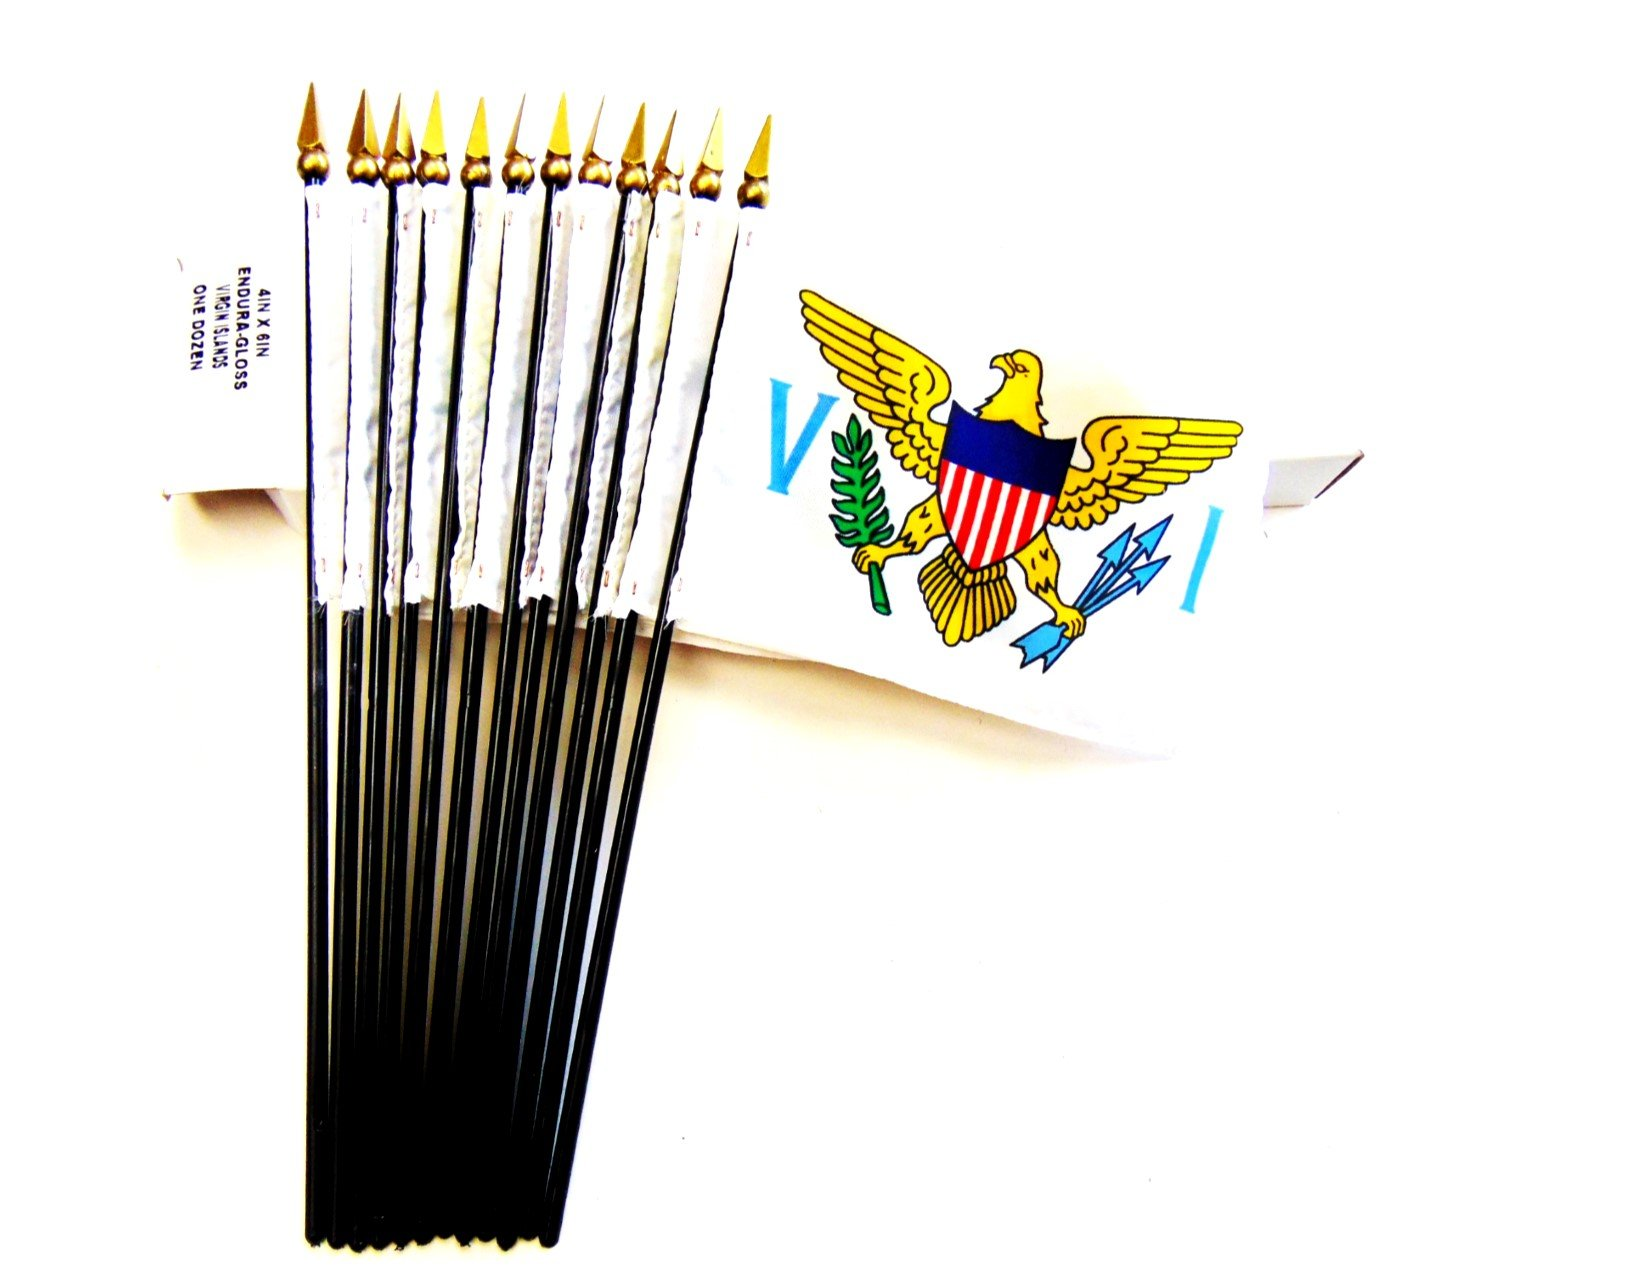 Made in USA!! Box of 12 US Virgin Islands 4''x6'' Miniature Desk & Little Table Flags; 12 Office and Waving Small Mini USVI Handheld Stick Flags in a Custom Made Cardboard Box Made for These Flags